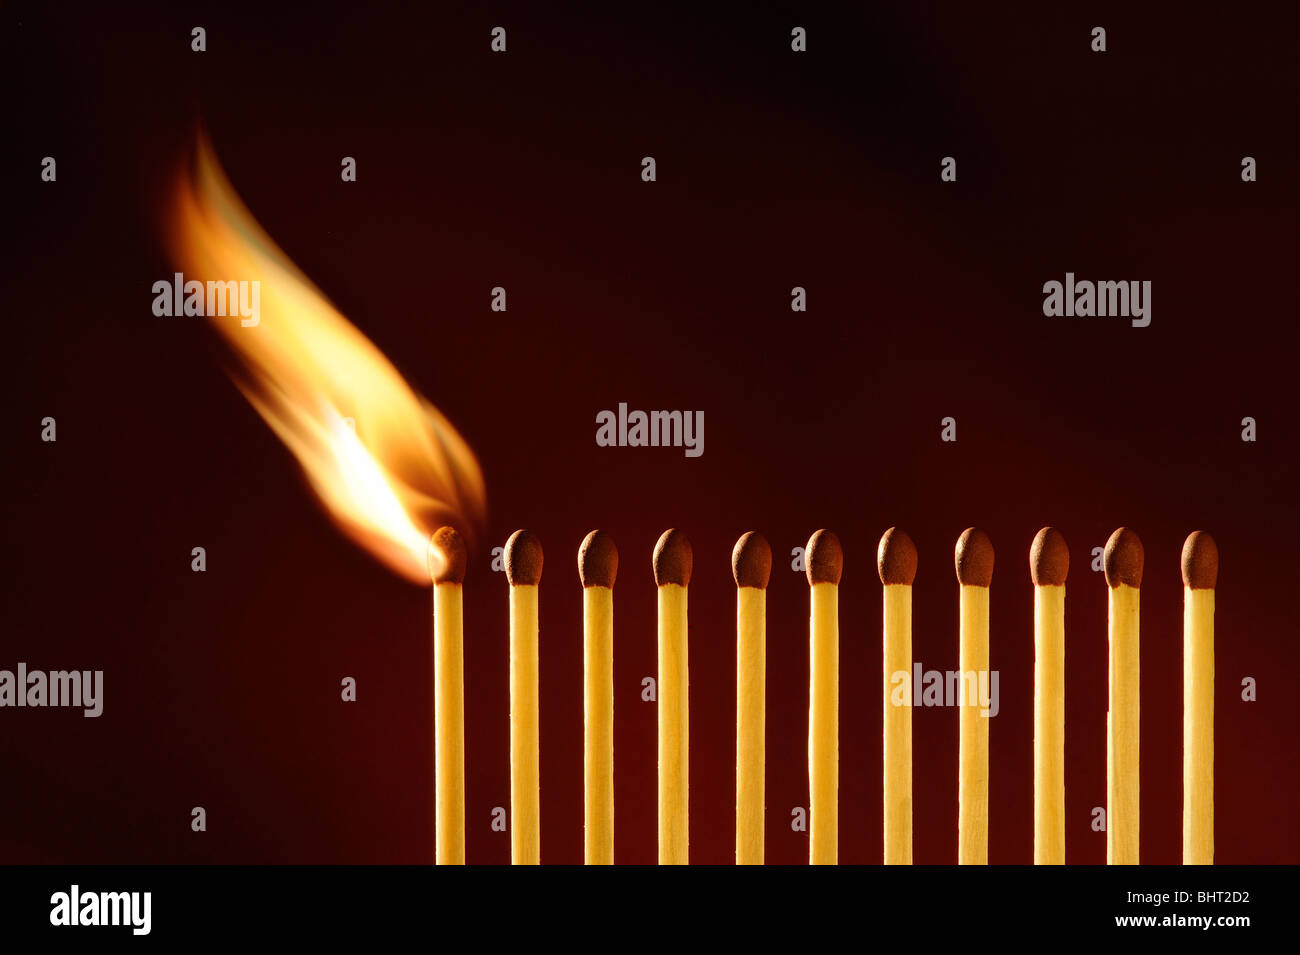 A line of matches igniting - Stock Image